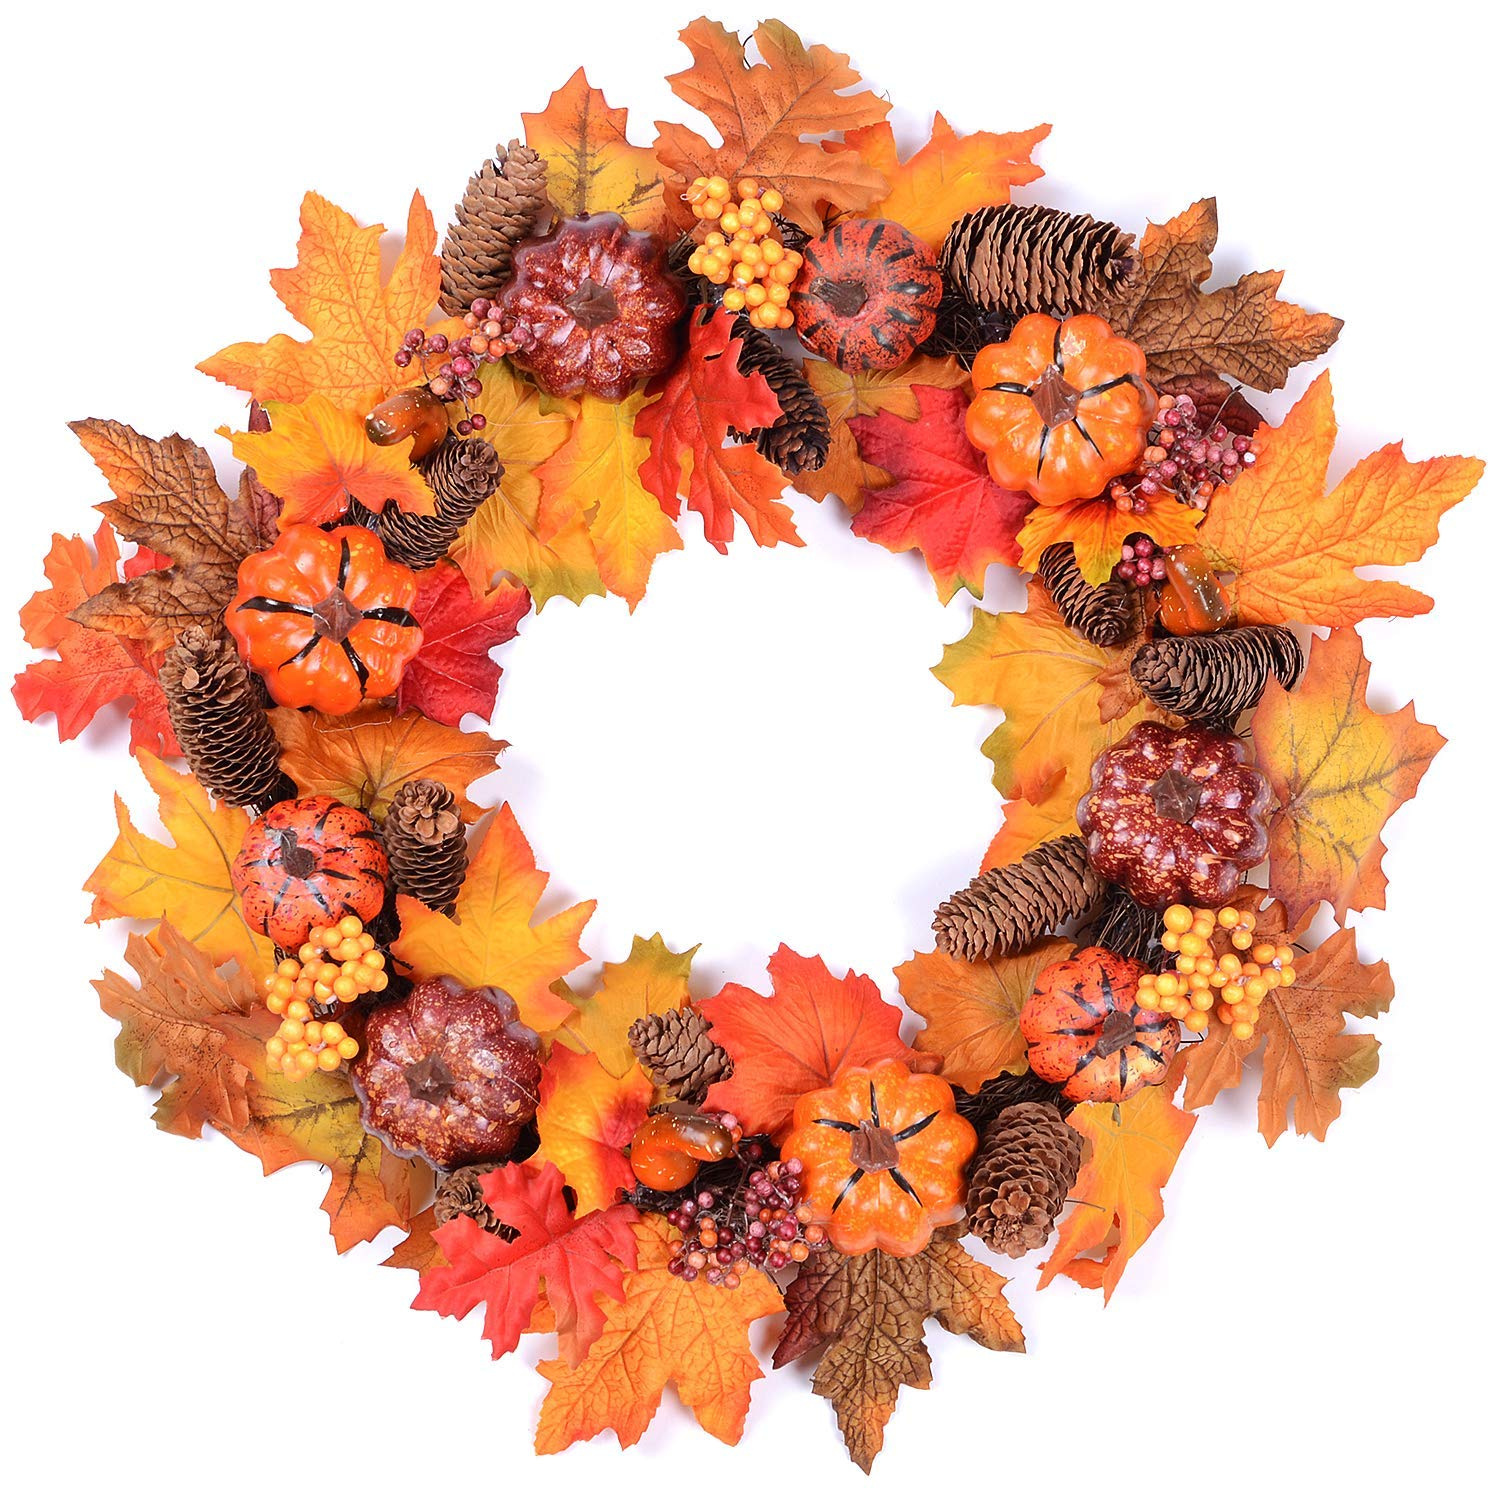 Woooow Pumpkin Harvest Silk Fall Wreath Front Door Wreath 20 Inches - Pumpkin Acorns Gourd Berries Maple Leaves Grapevine Thanksgiving Wreath Brightens Party Wedding Halloween Festival Decor